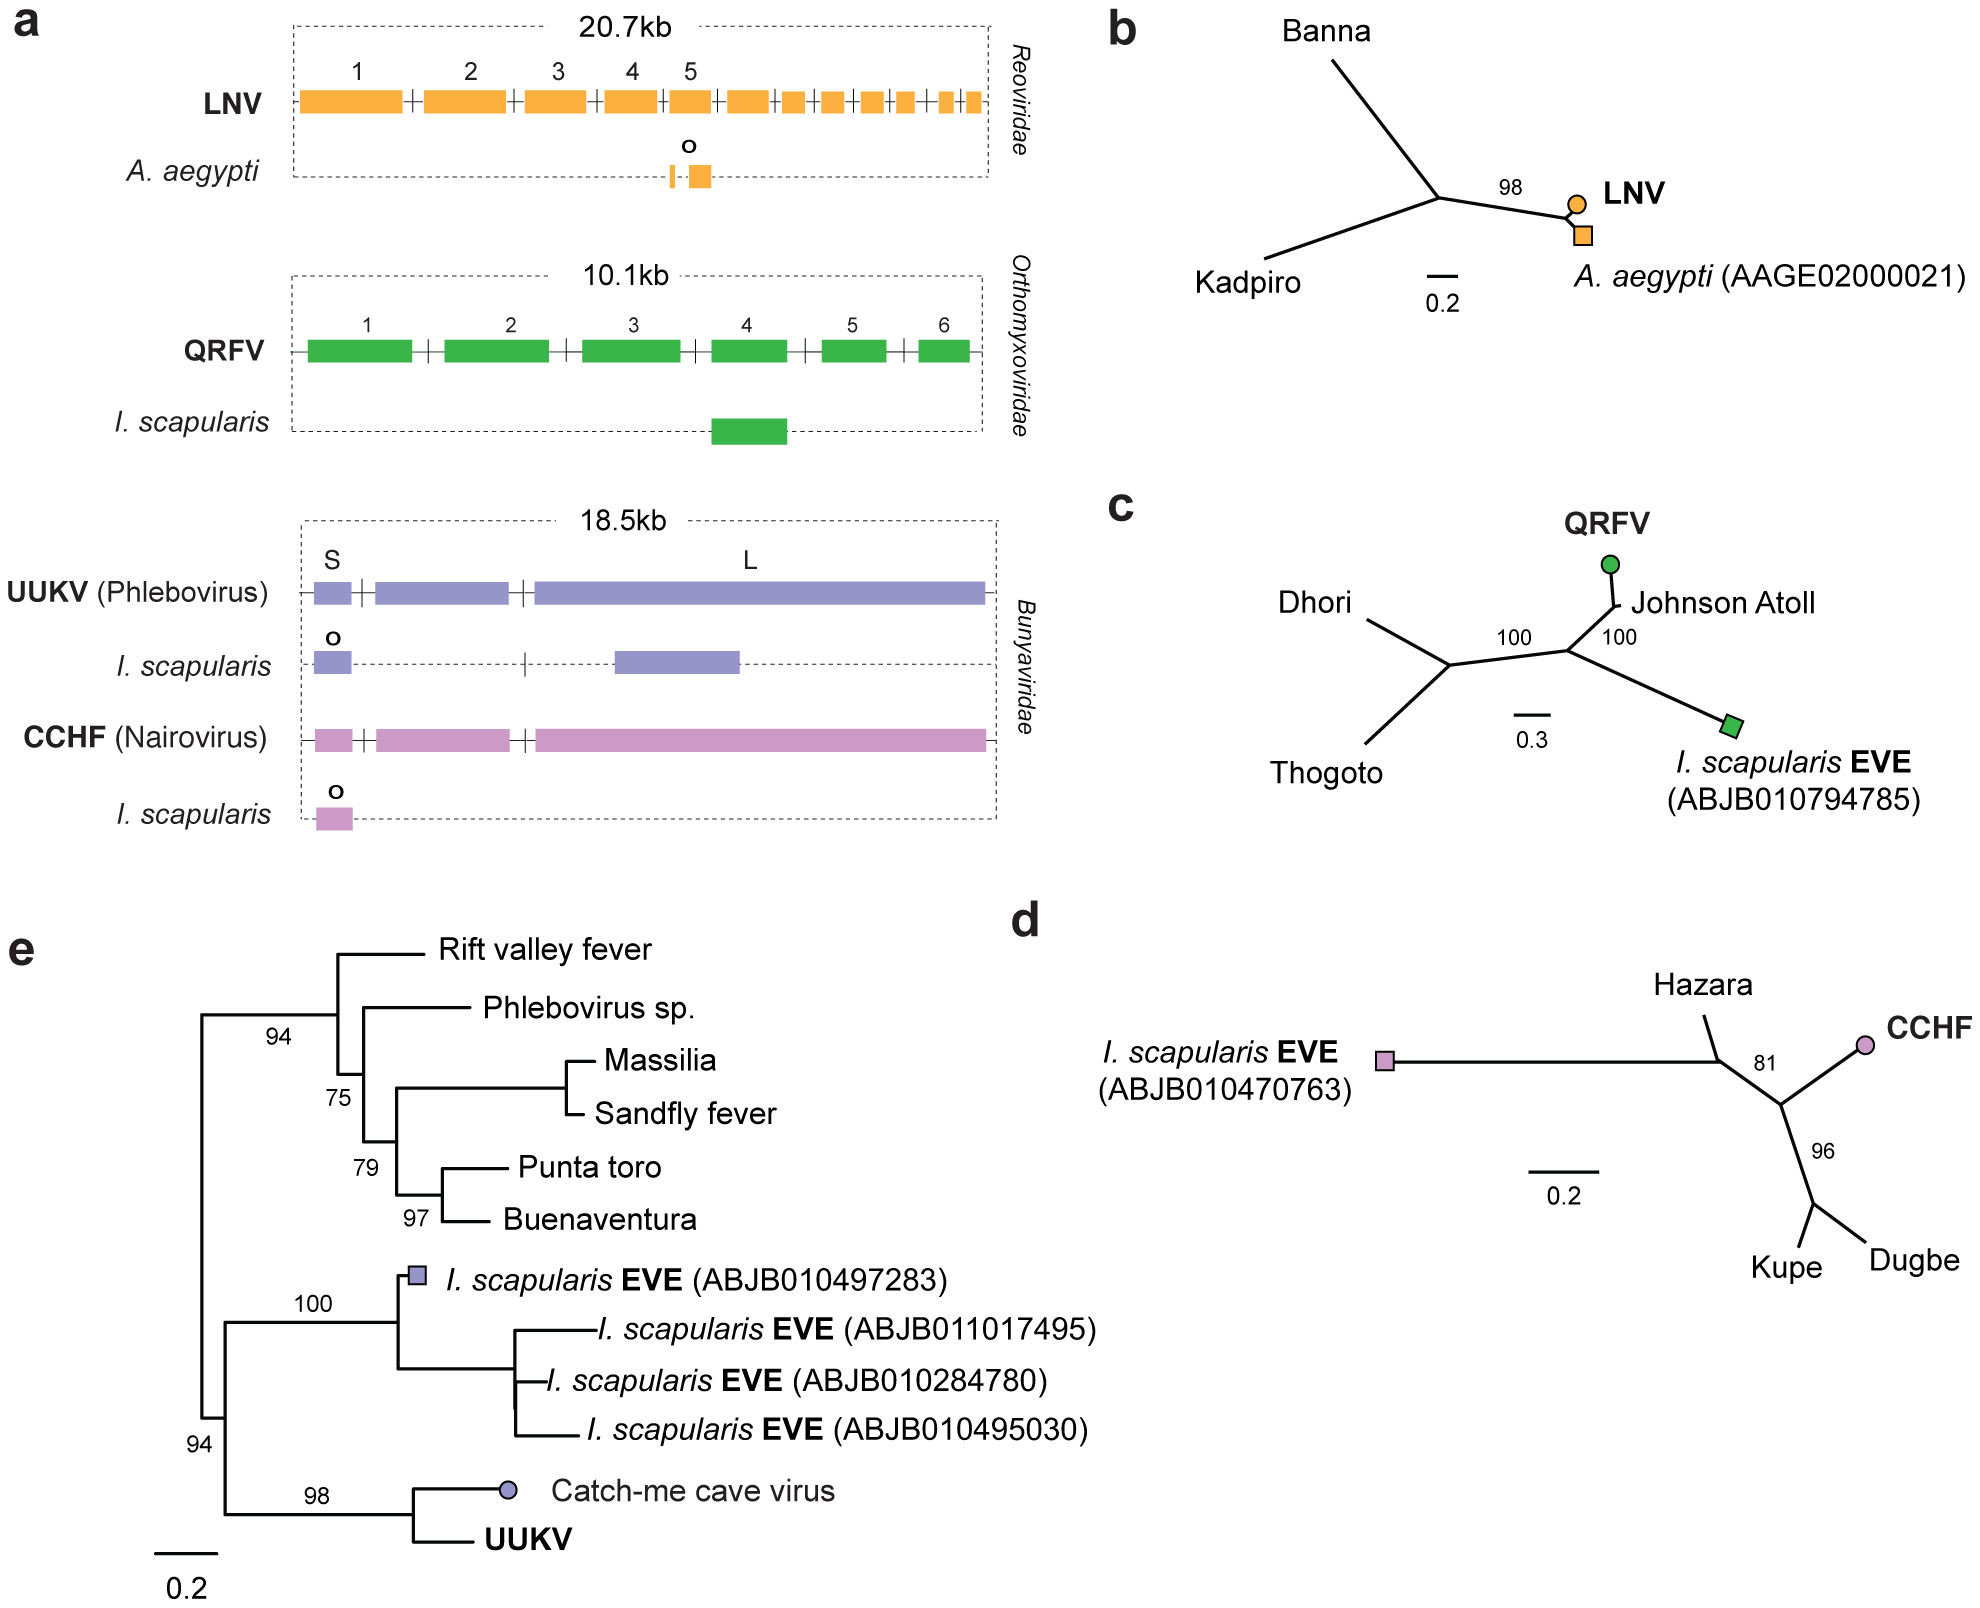 Genetic structures and phylogenetic relationships of EVEs related to segmented RNA viruses.